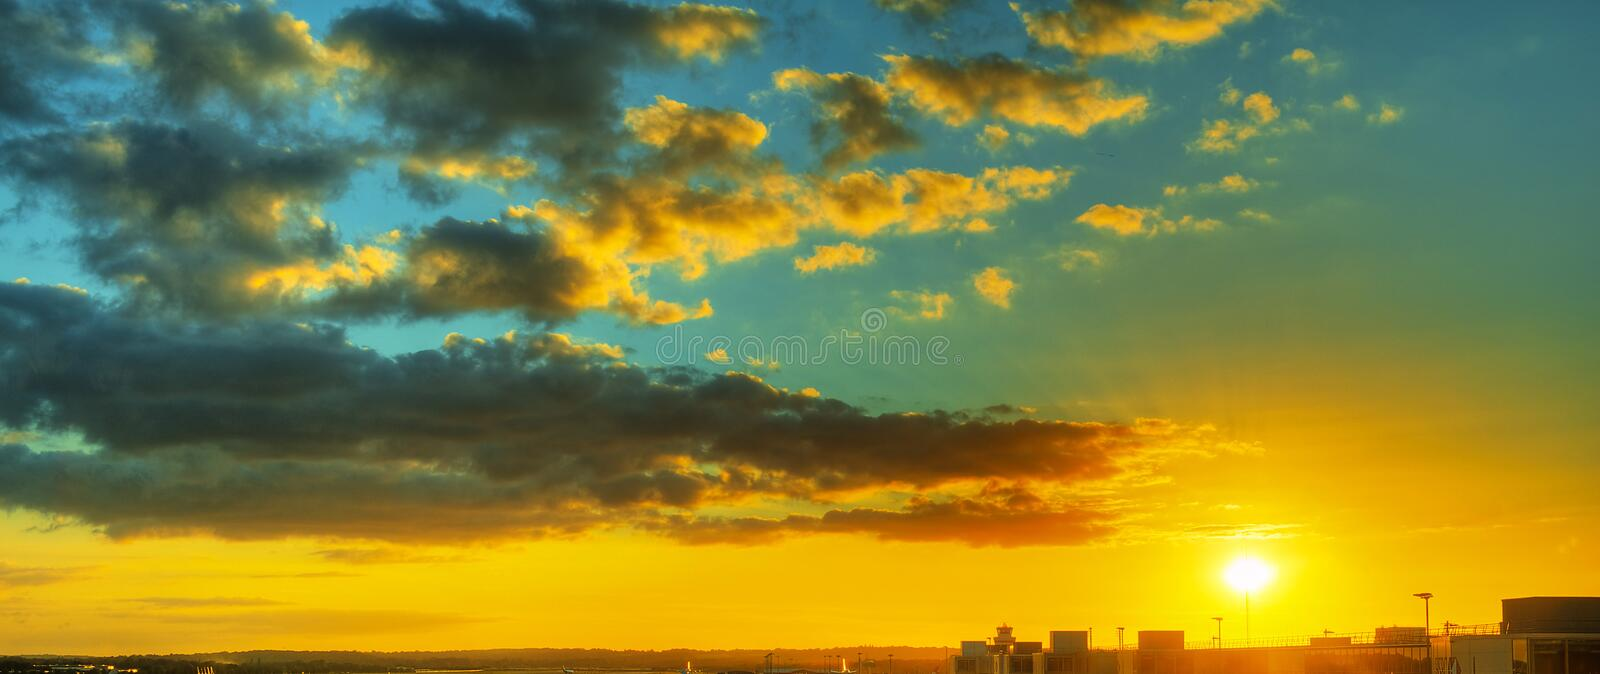 Dramatic sunset sky over industrial buildings stock image